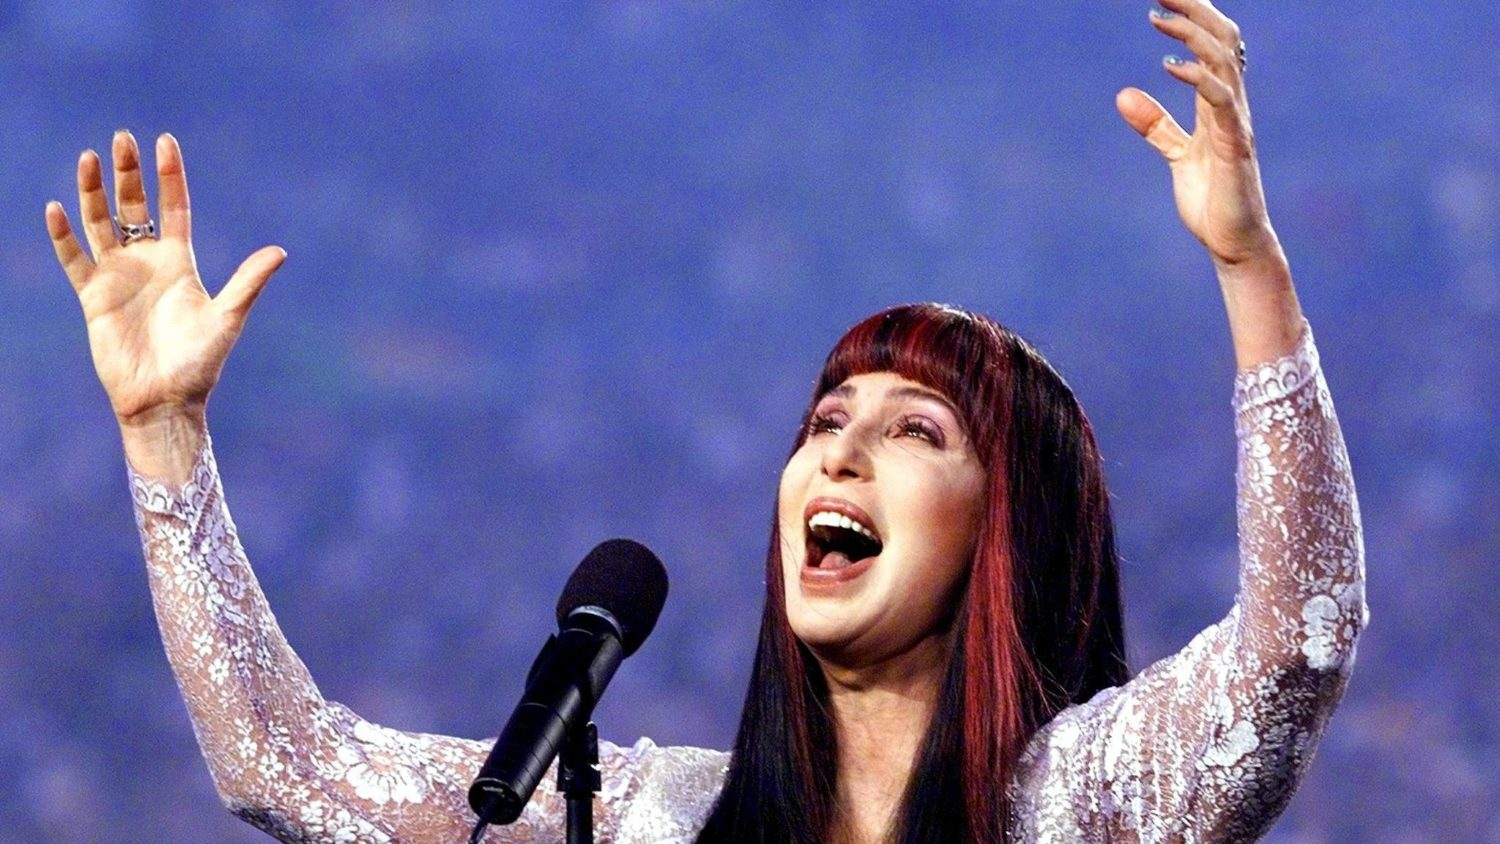 20 Years Of Cher's 'Believe' And Its Auto-Tune Legacy | WAMU